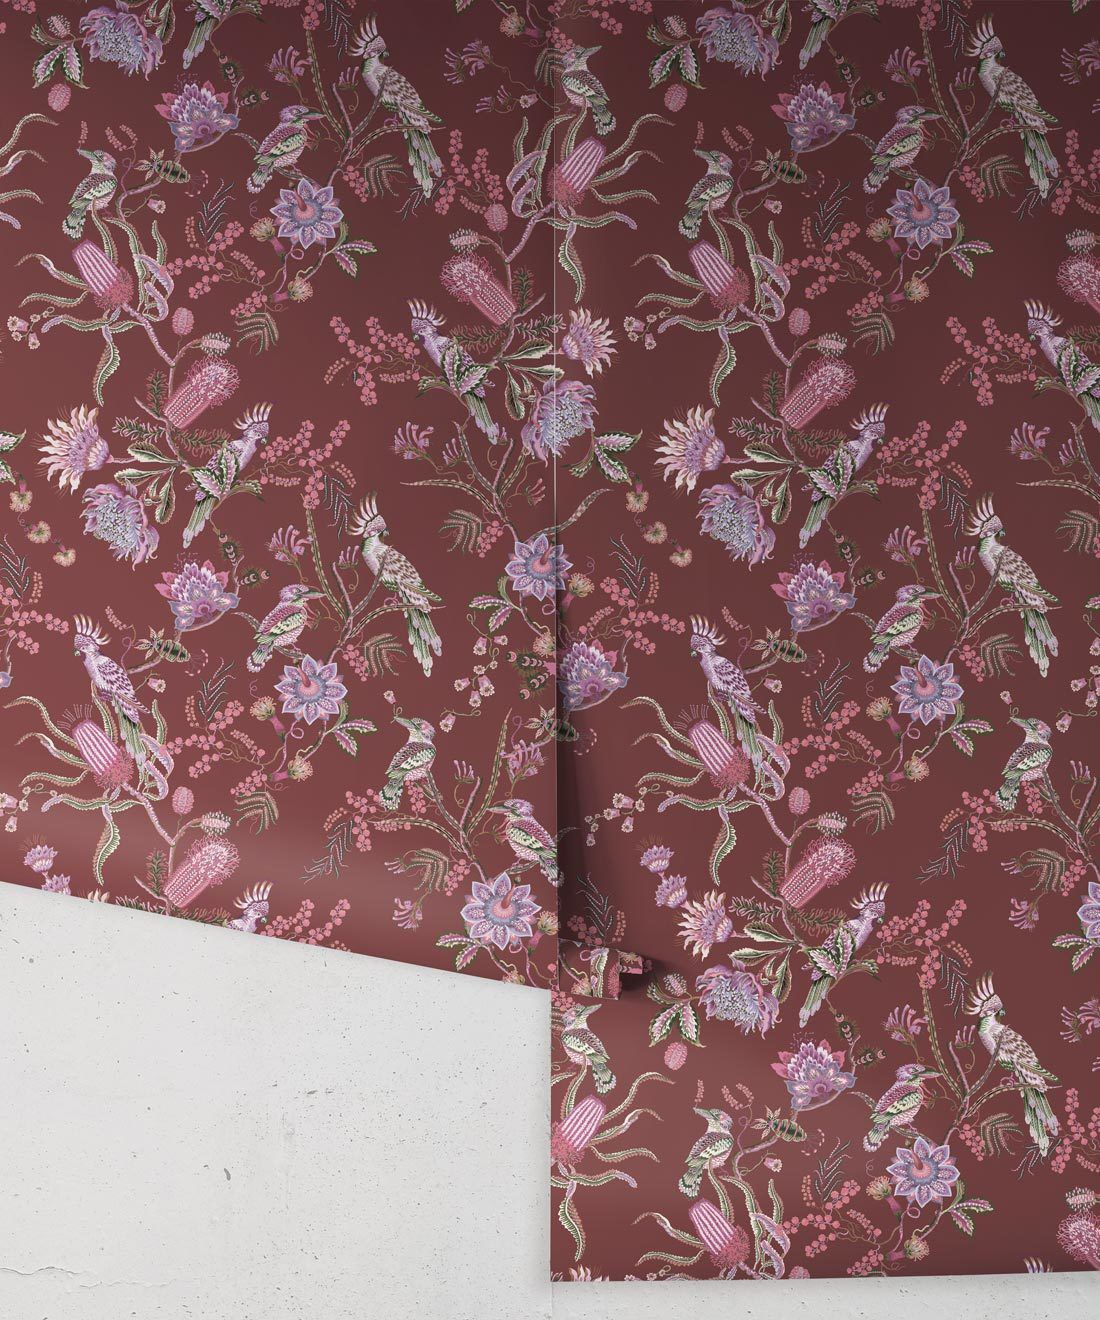 Matilda Wallpaper • Cockatoo, kookaburra • Australian Wallpaper • Milton & King USA • Plum Roll